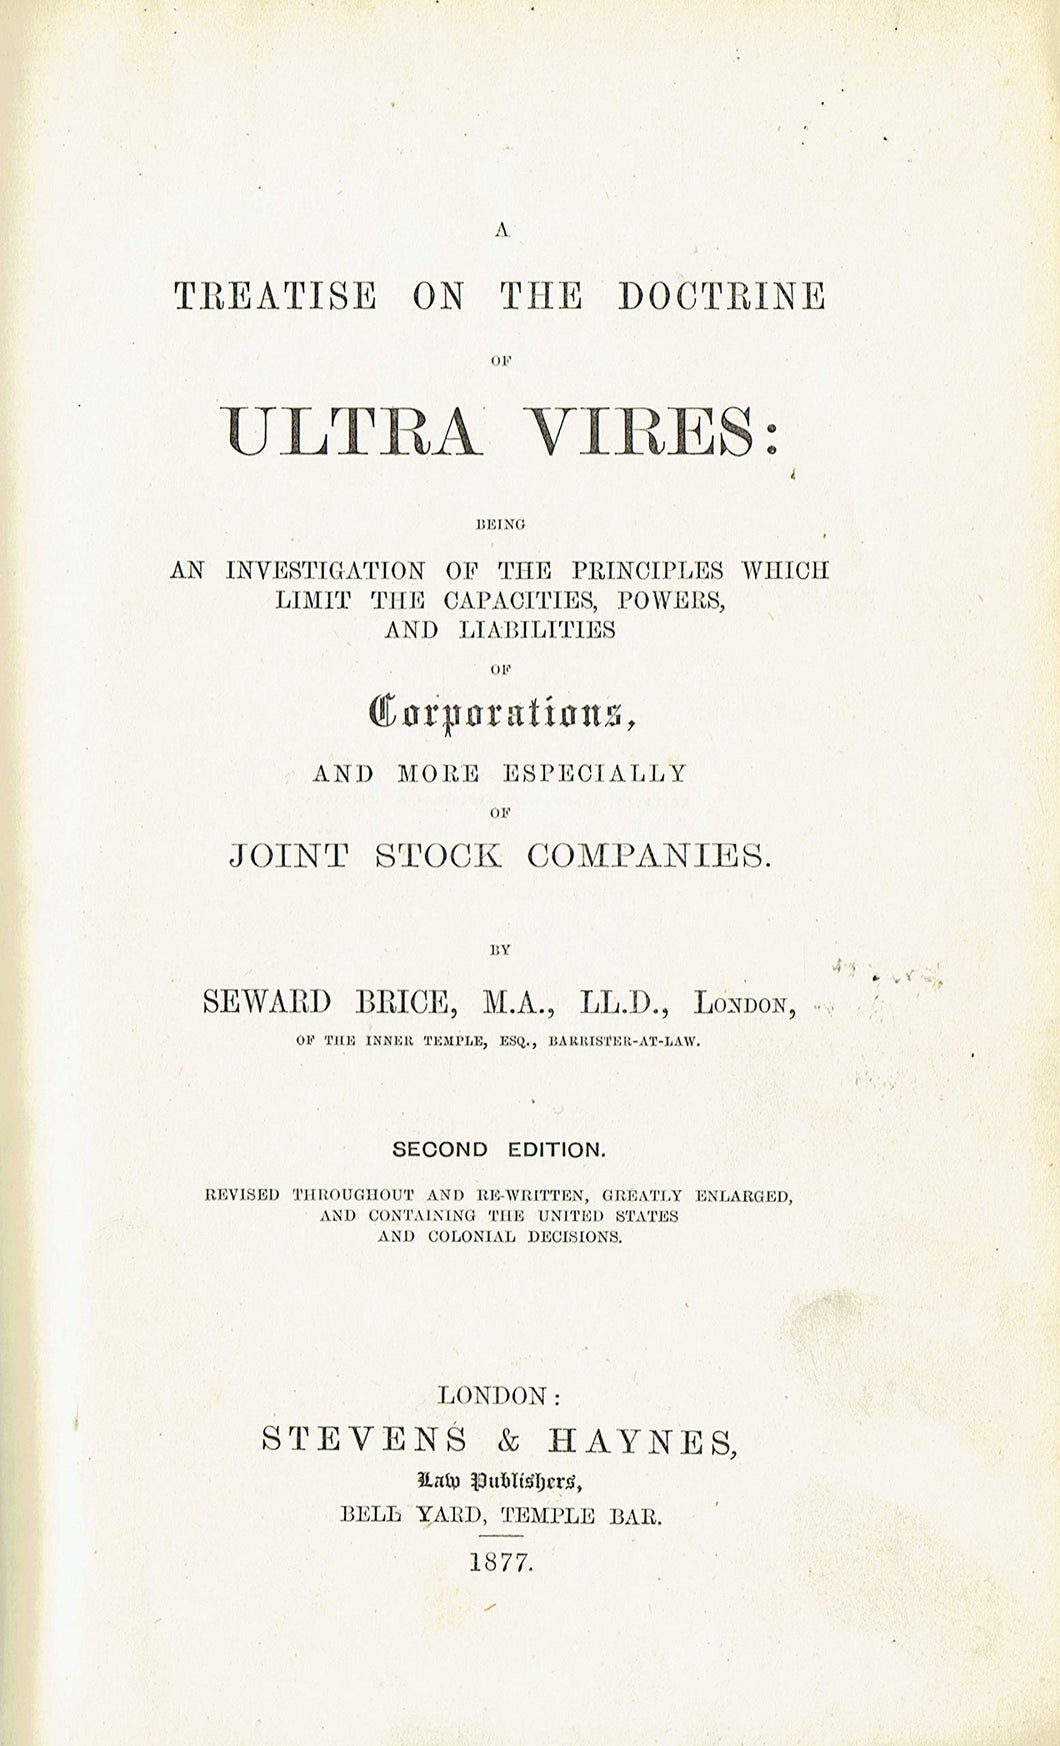 Brice on the Doctrine of Ultra Vires - A Treatise on the Doctrine of Ultra Vires - Second Edition/2nd Edition